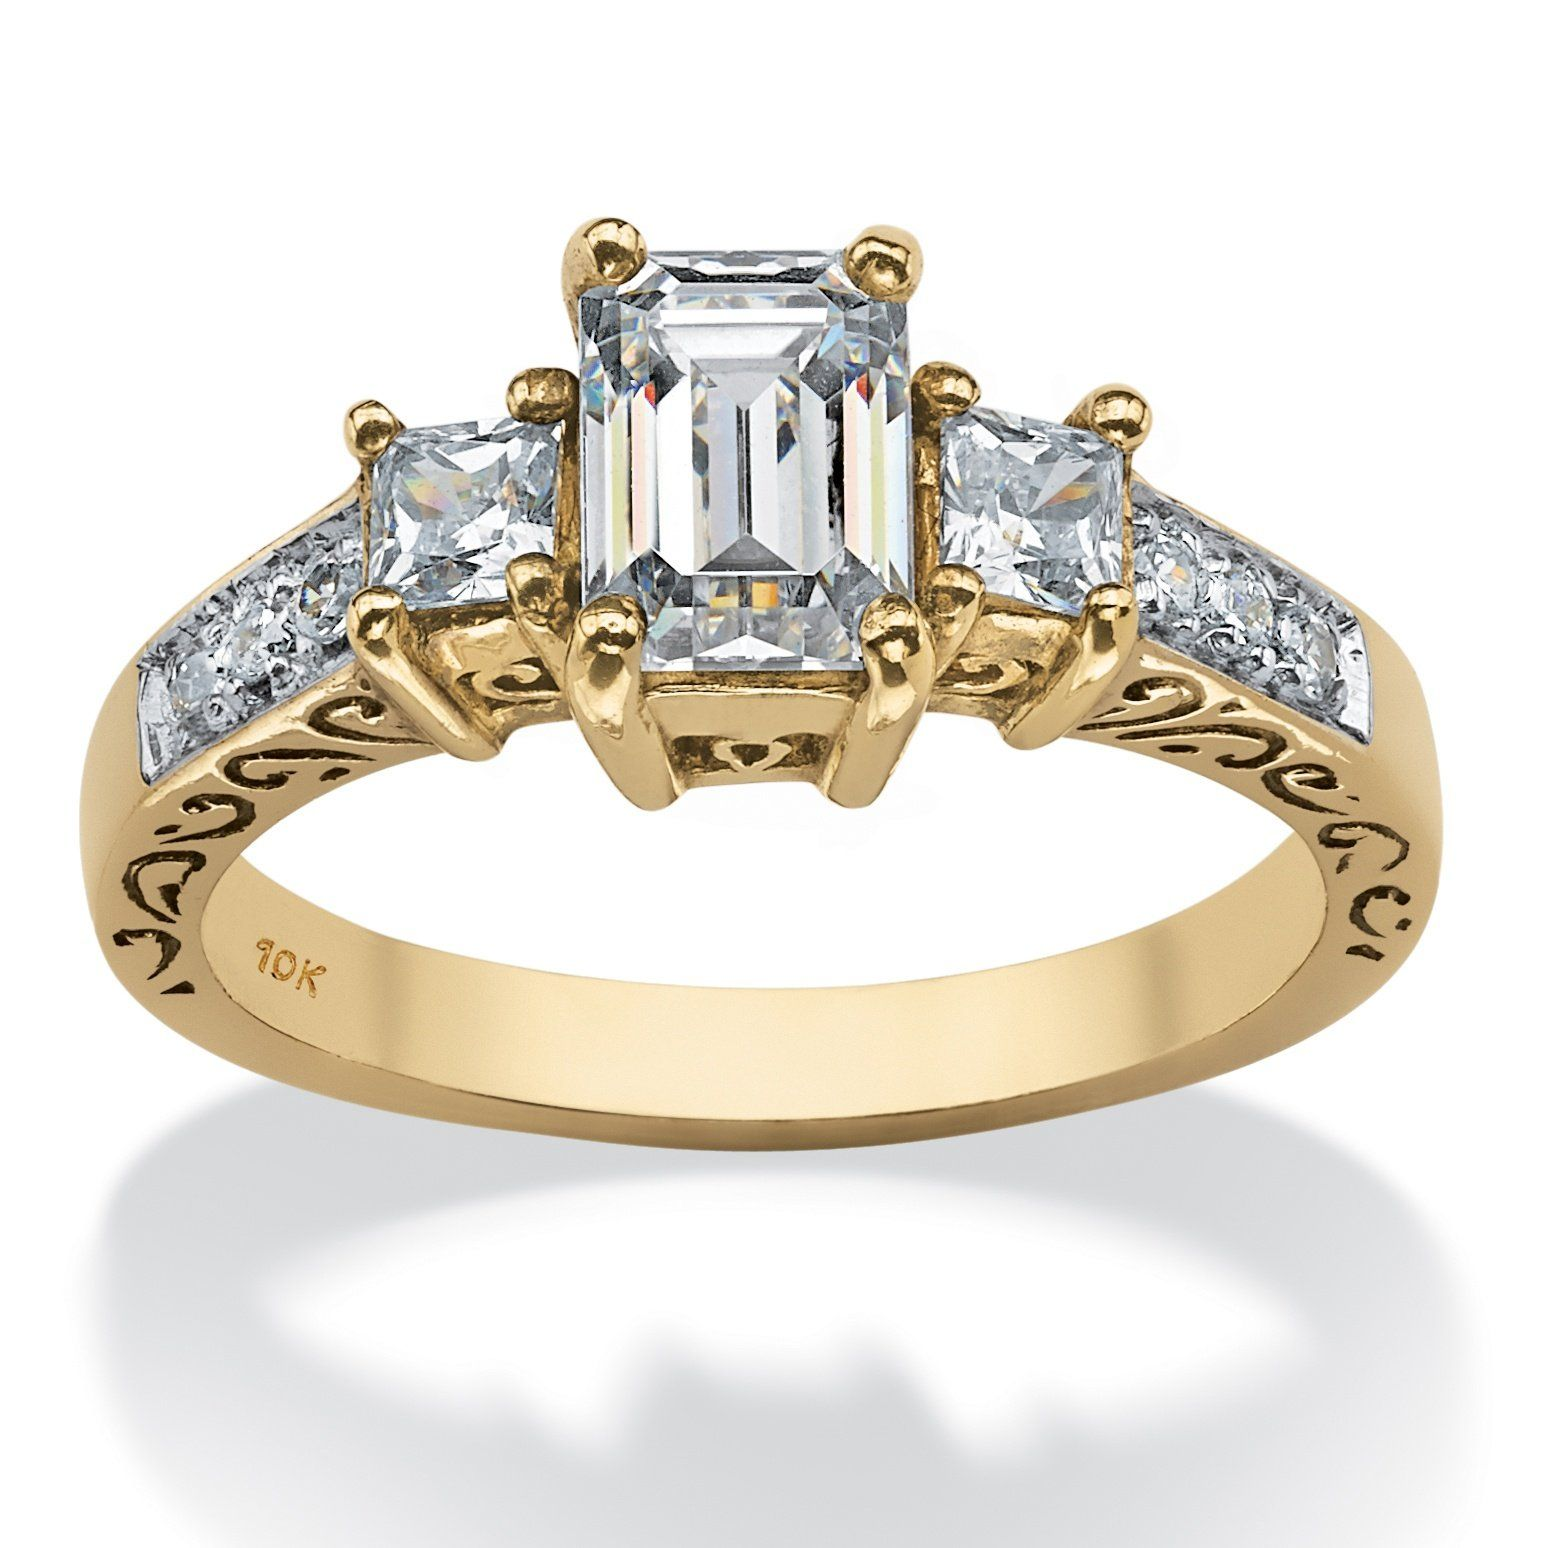 Emerald Cut White Cubic Zirconia 10k Yellow Gold Scroll Ring 10k